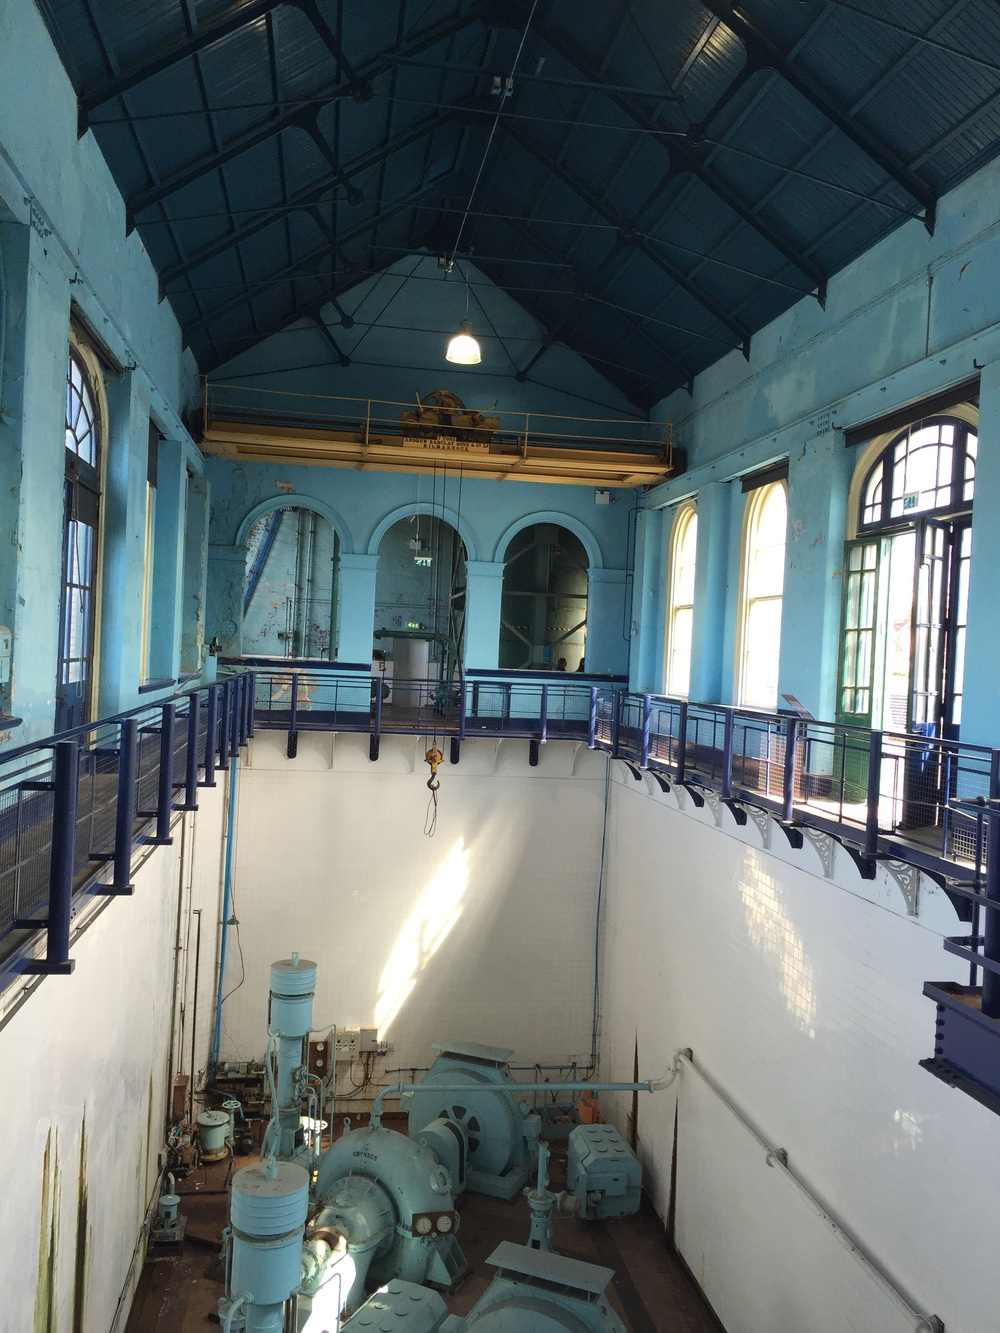 This pump house once operated Titanic's dry dock, where it was floated down the river empty and then finished on the inside. This opened the huge hate that allowed water to flow inside the dock to get the ship in place, then it drained and pumped the water out.